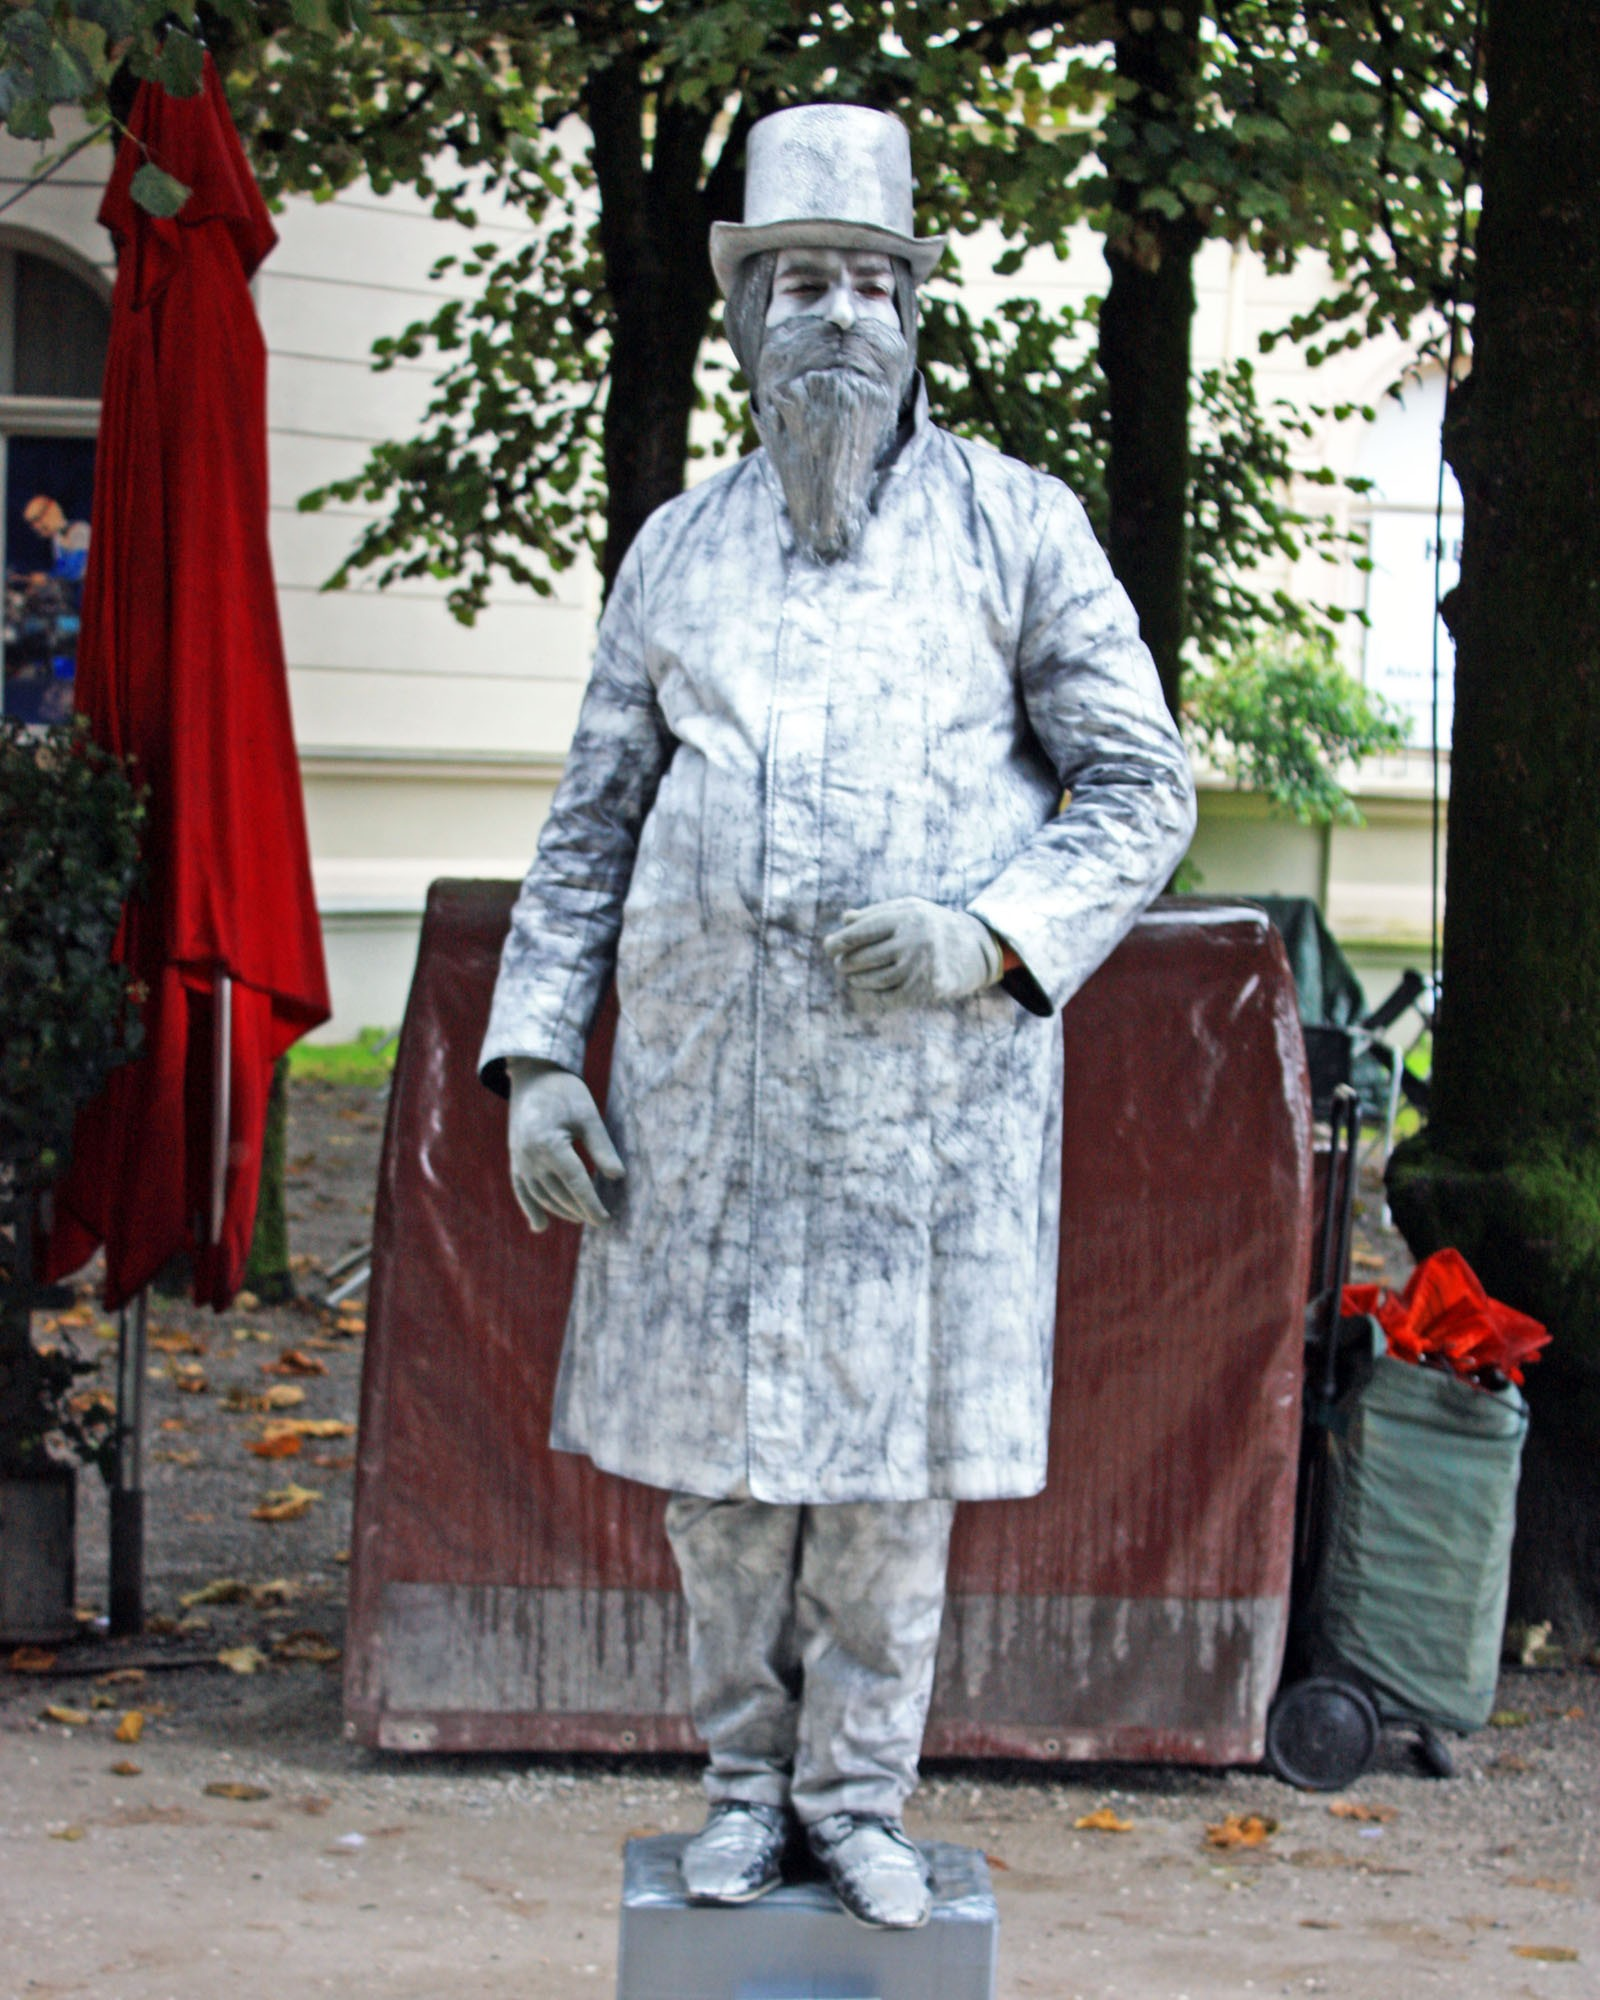 A mime in Mirabell Gardens.